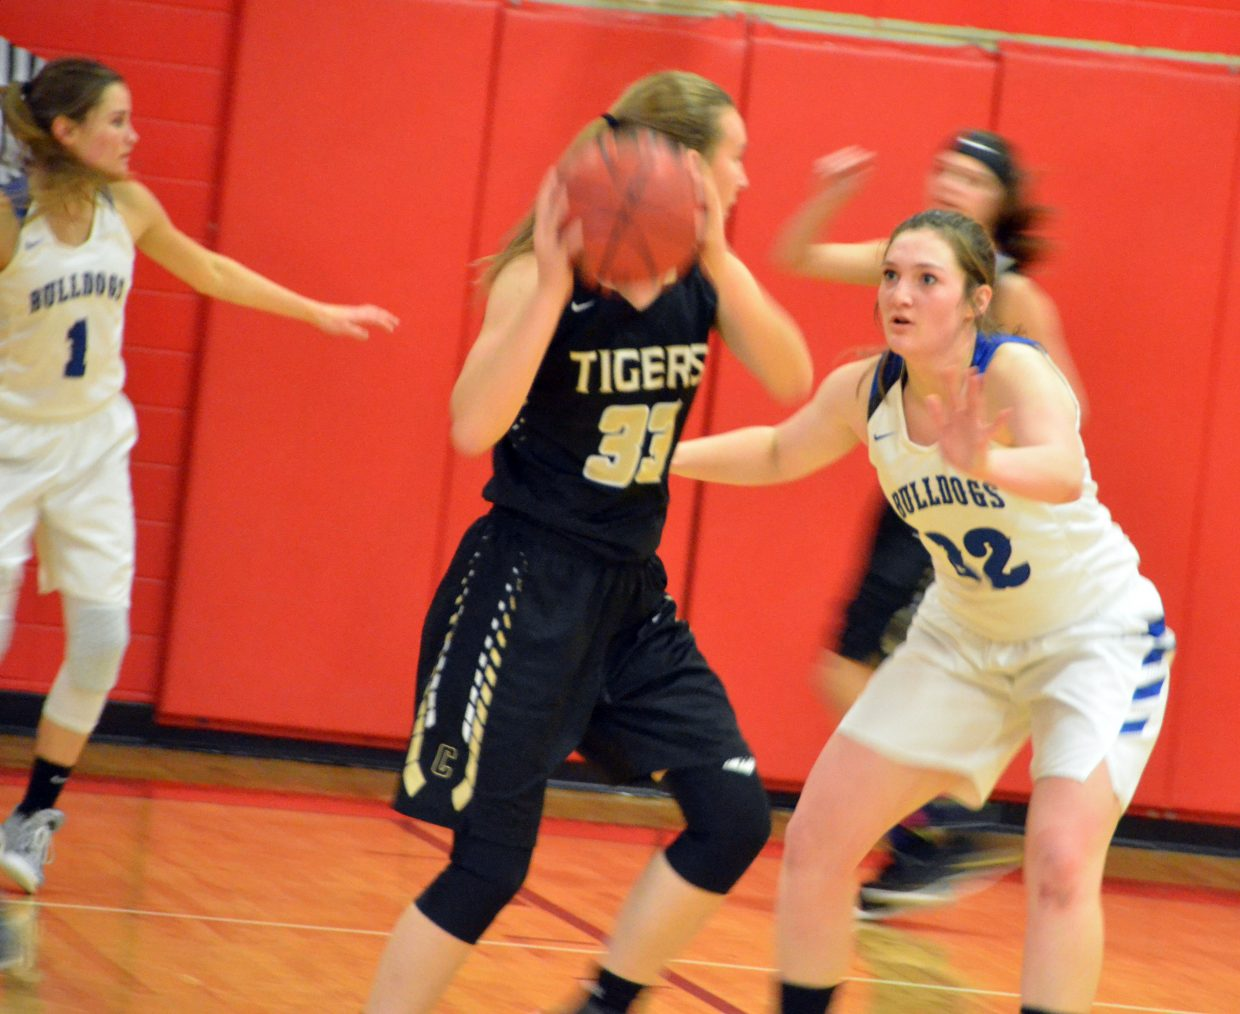 Moffat County High School's Stephenie Swindler, left, and Tiffany Hildebrandt stay moving on defense against Cañon City.